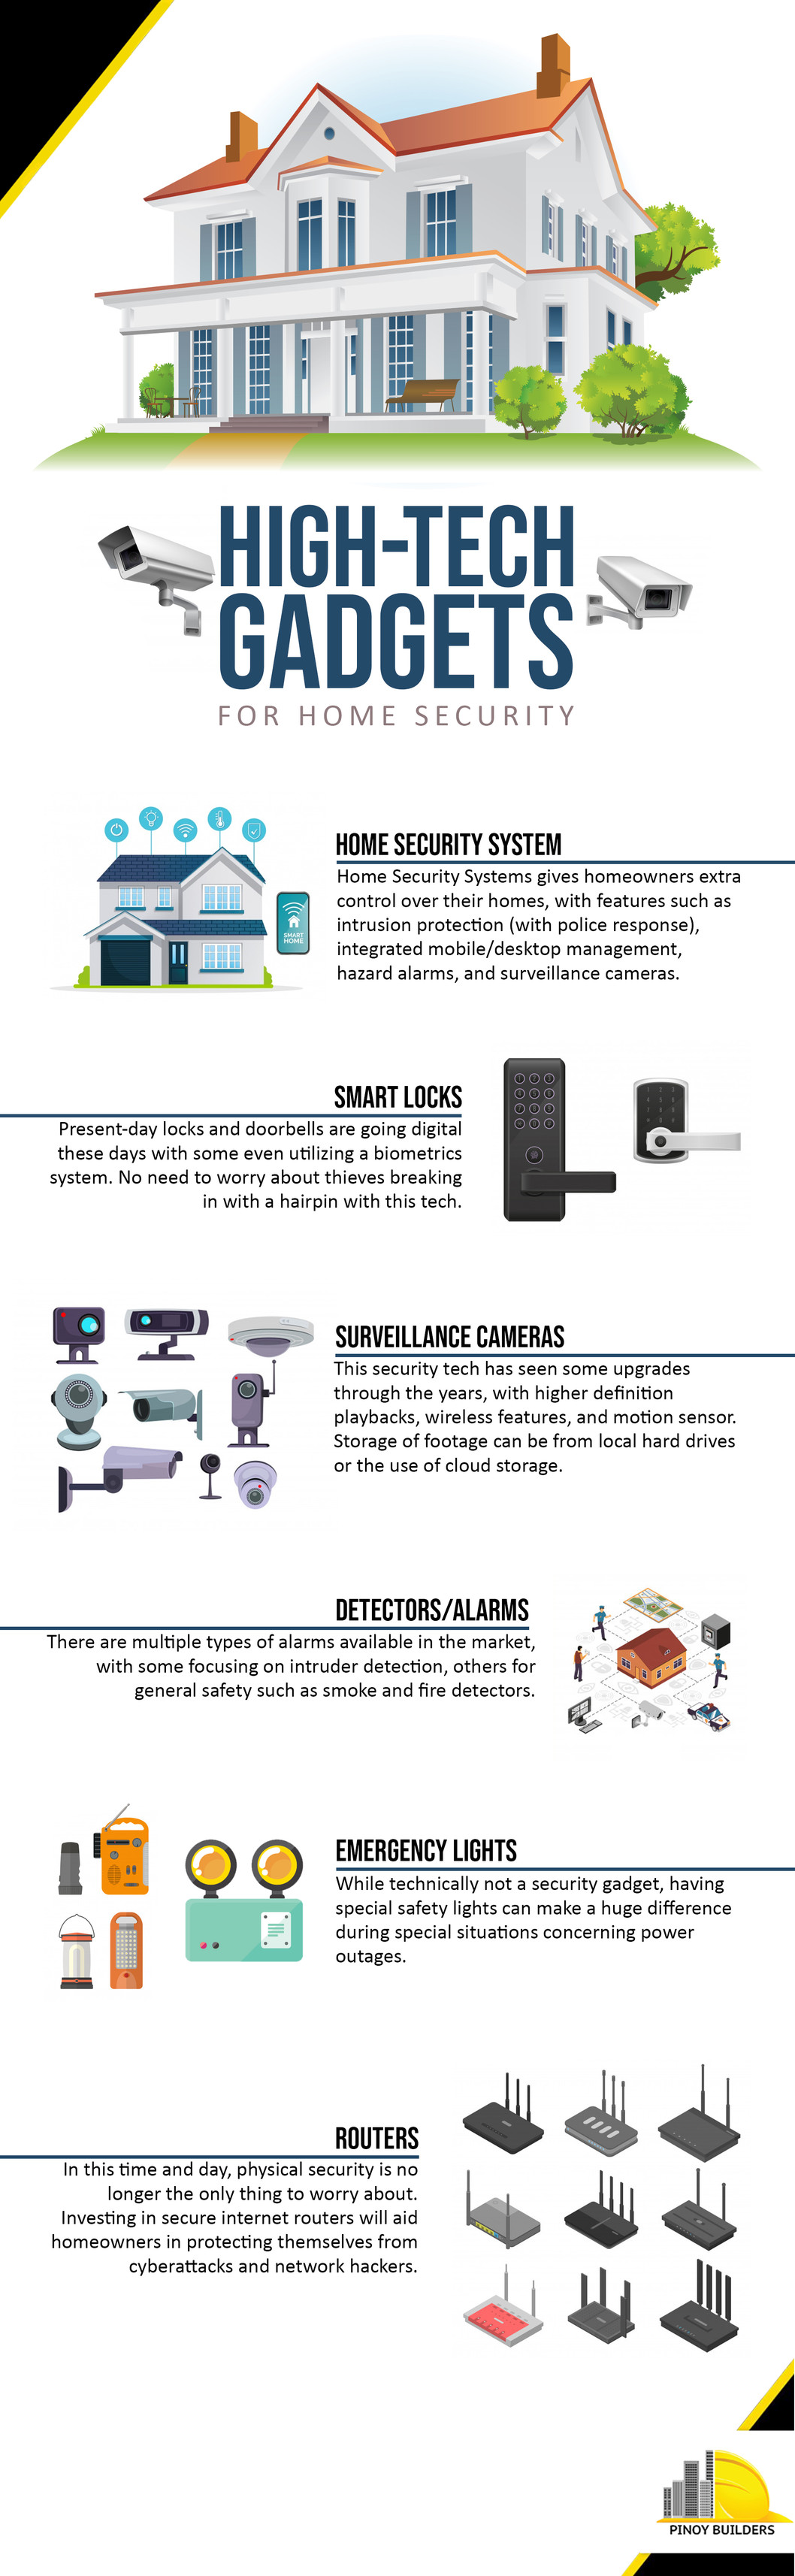 PB High-Tech Gadgets for Home Security.jpg